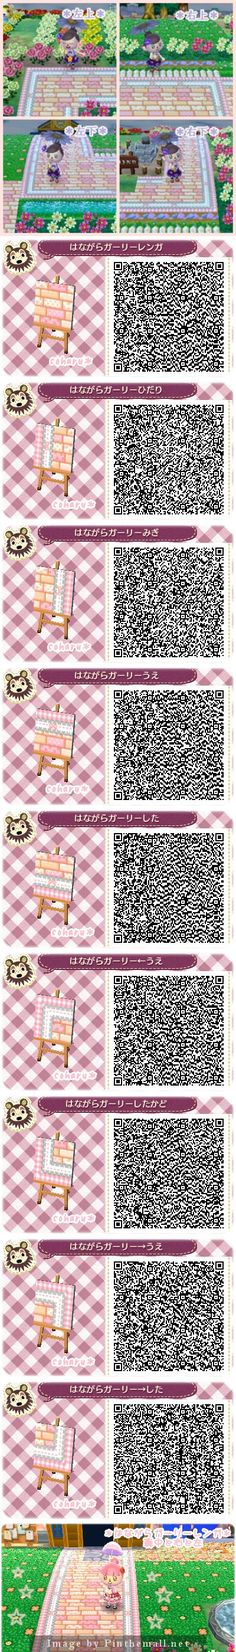 Girly flowery brick path QR codes